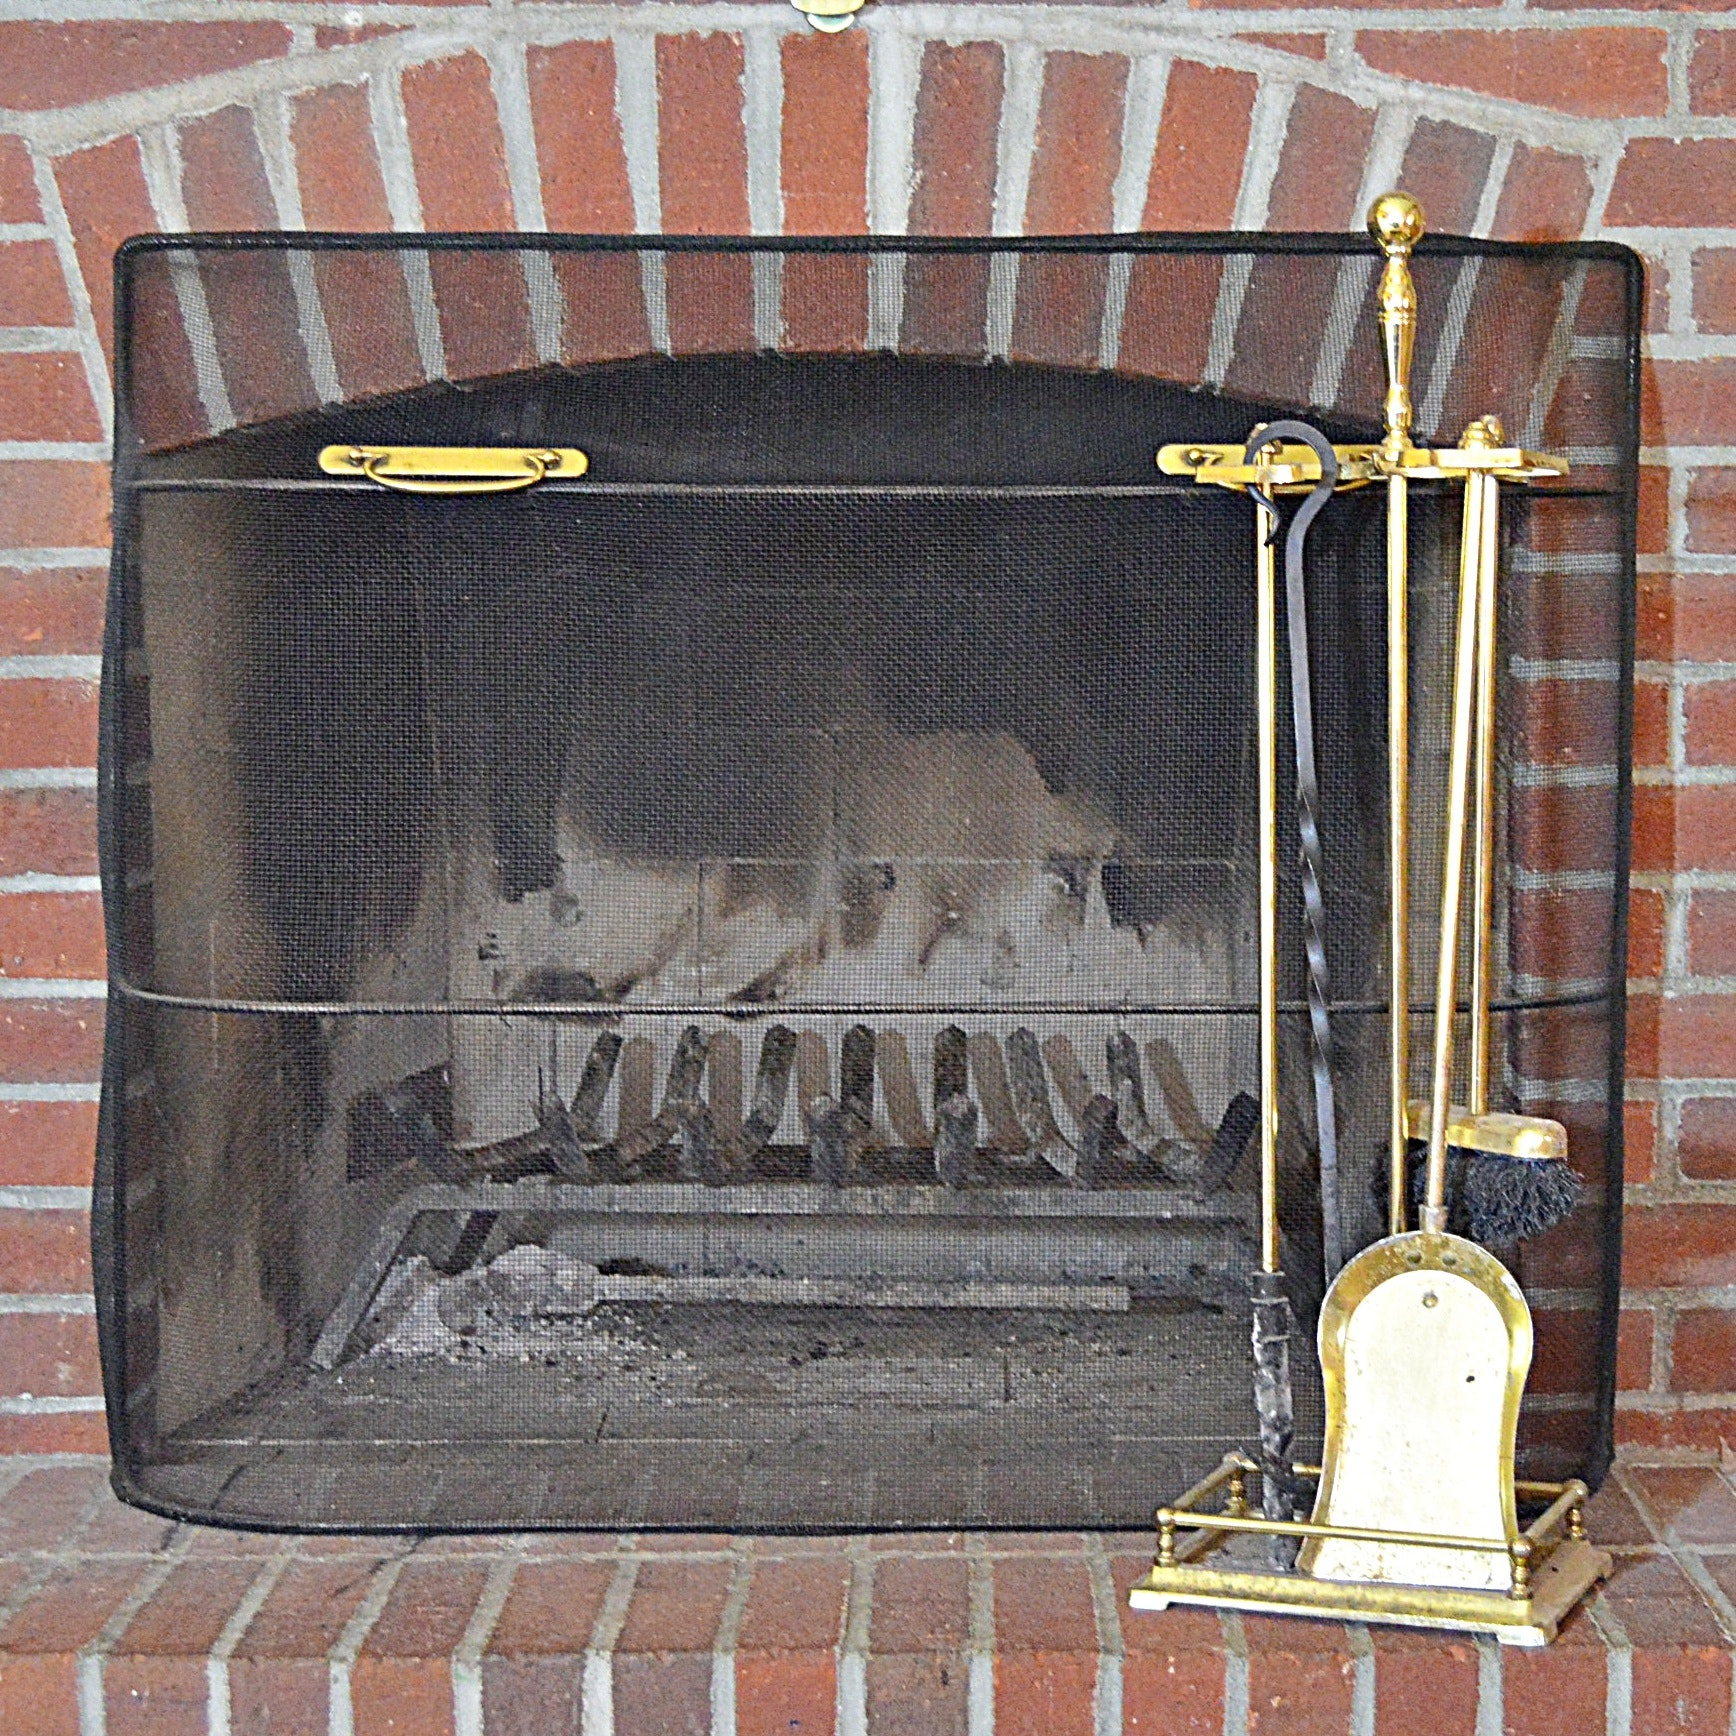 Fireplace Screen and Brass Hearth Tool Set